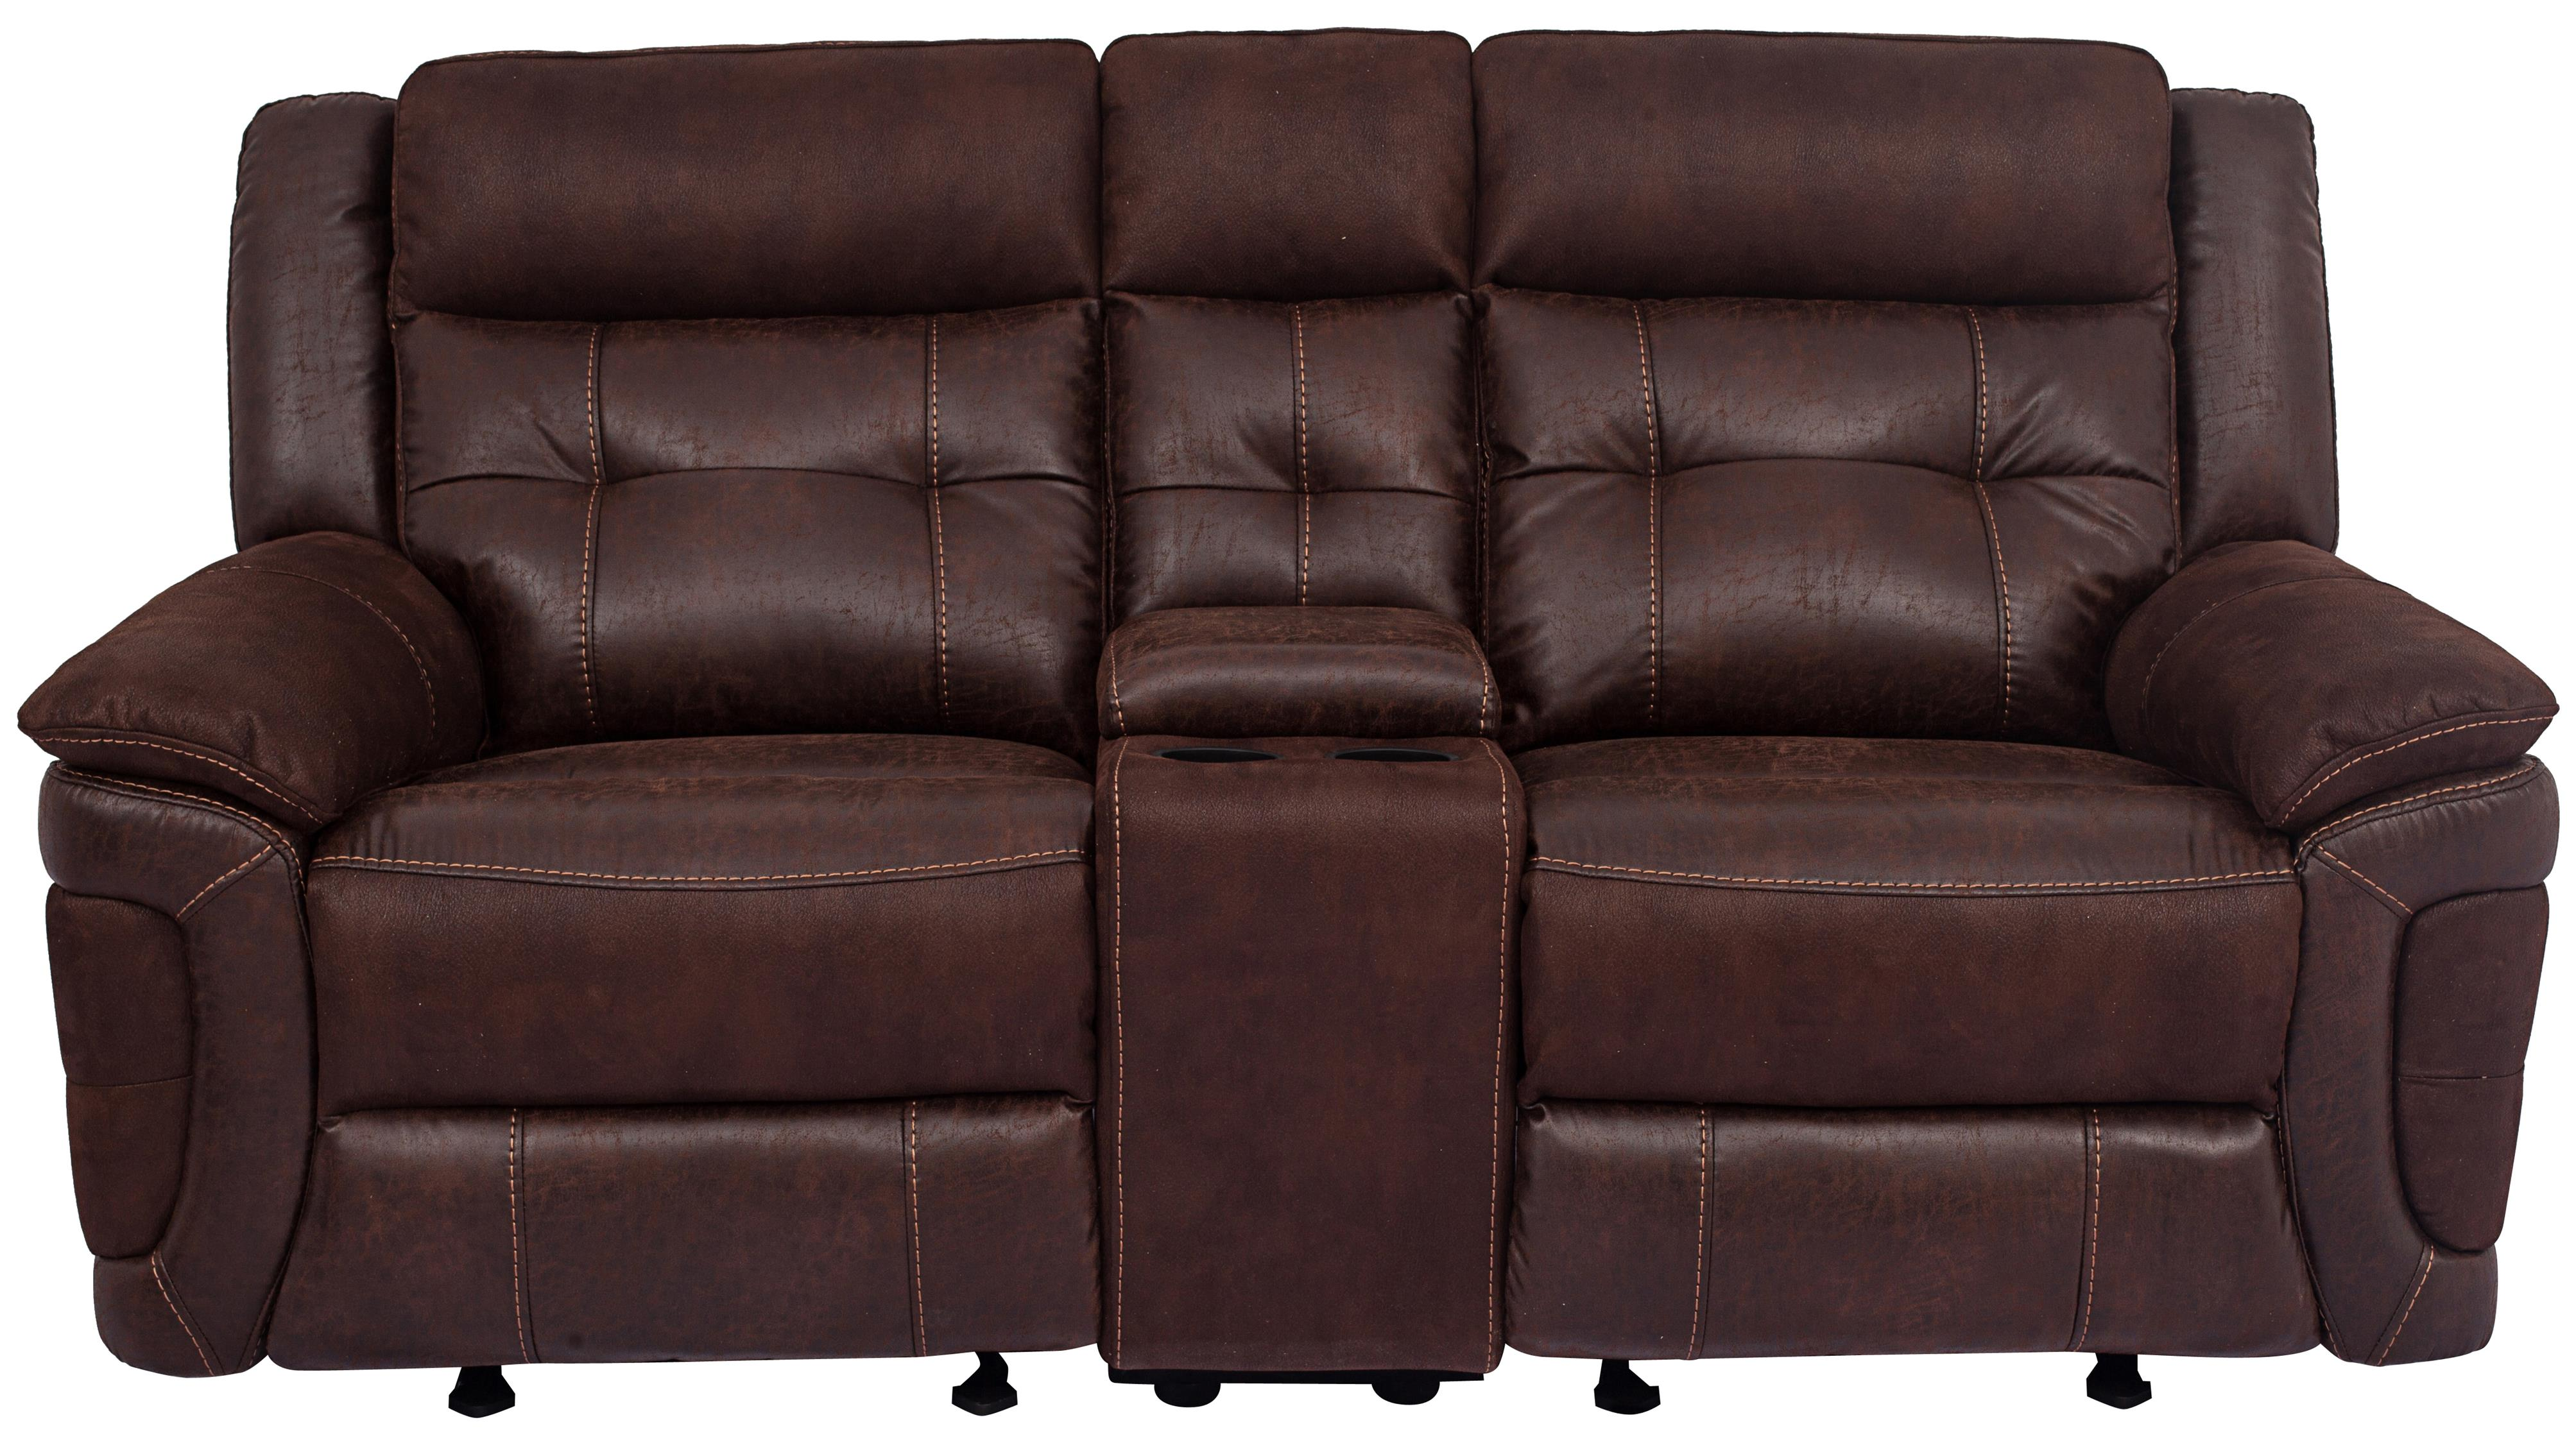 XW9827M Reclining Loveseat with Console by Cheers Sofa at Lagniappe Home Store